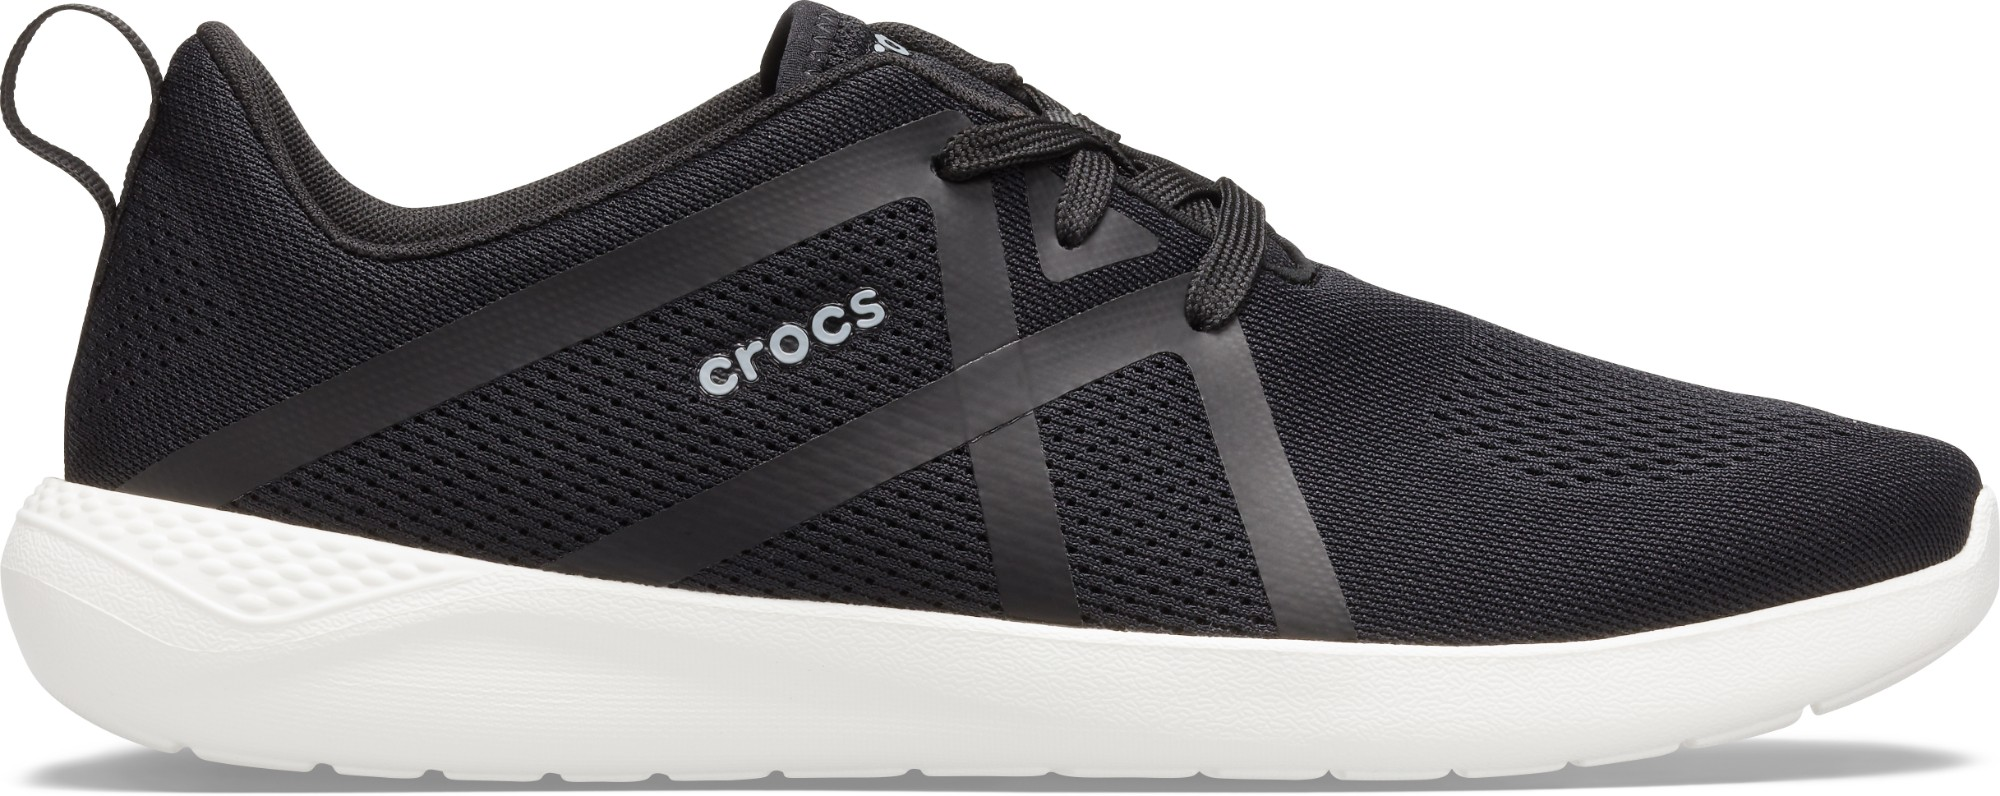 Crocs™ Literide Modform Lace Mens Black/White 42,5